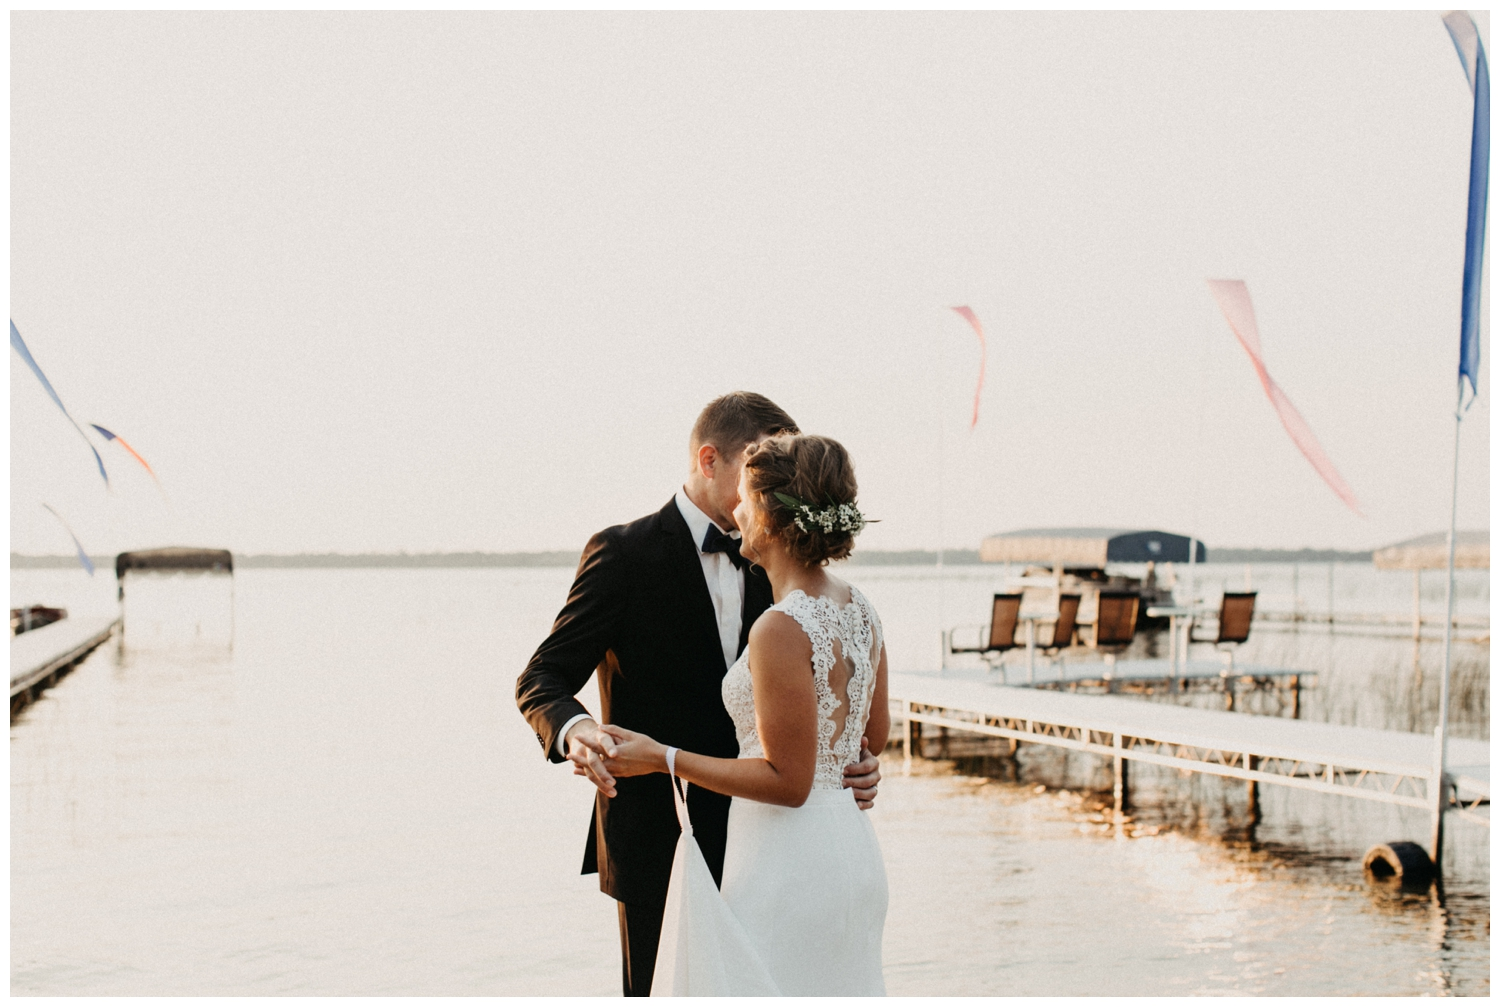 First dance on the beach at sunset on Lake Edward